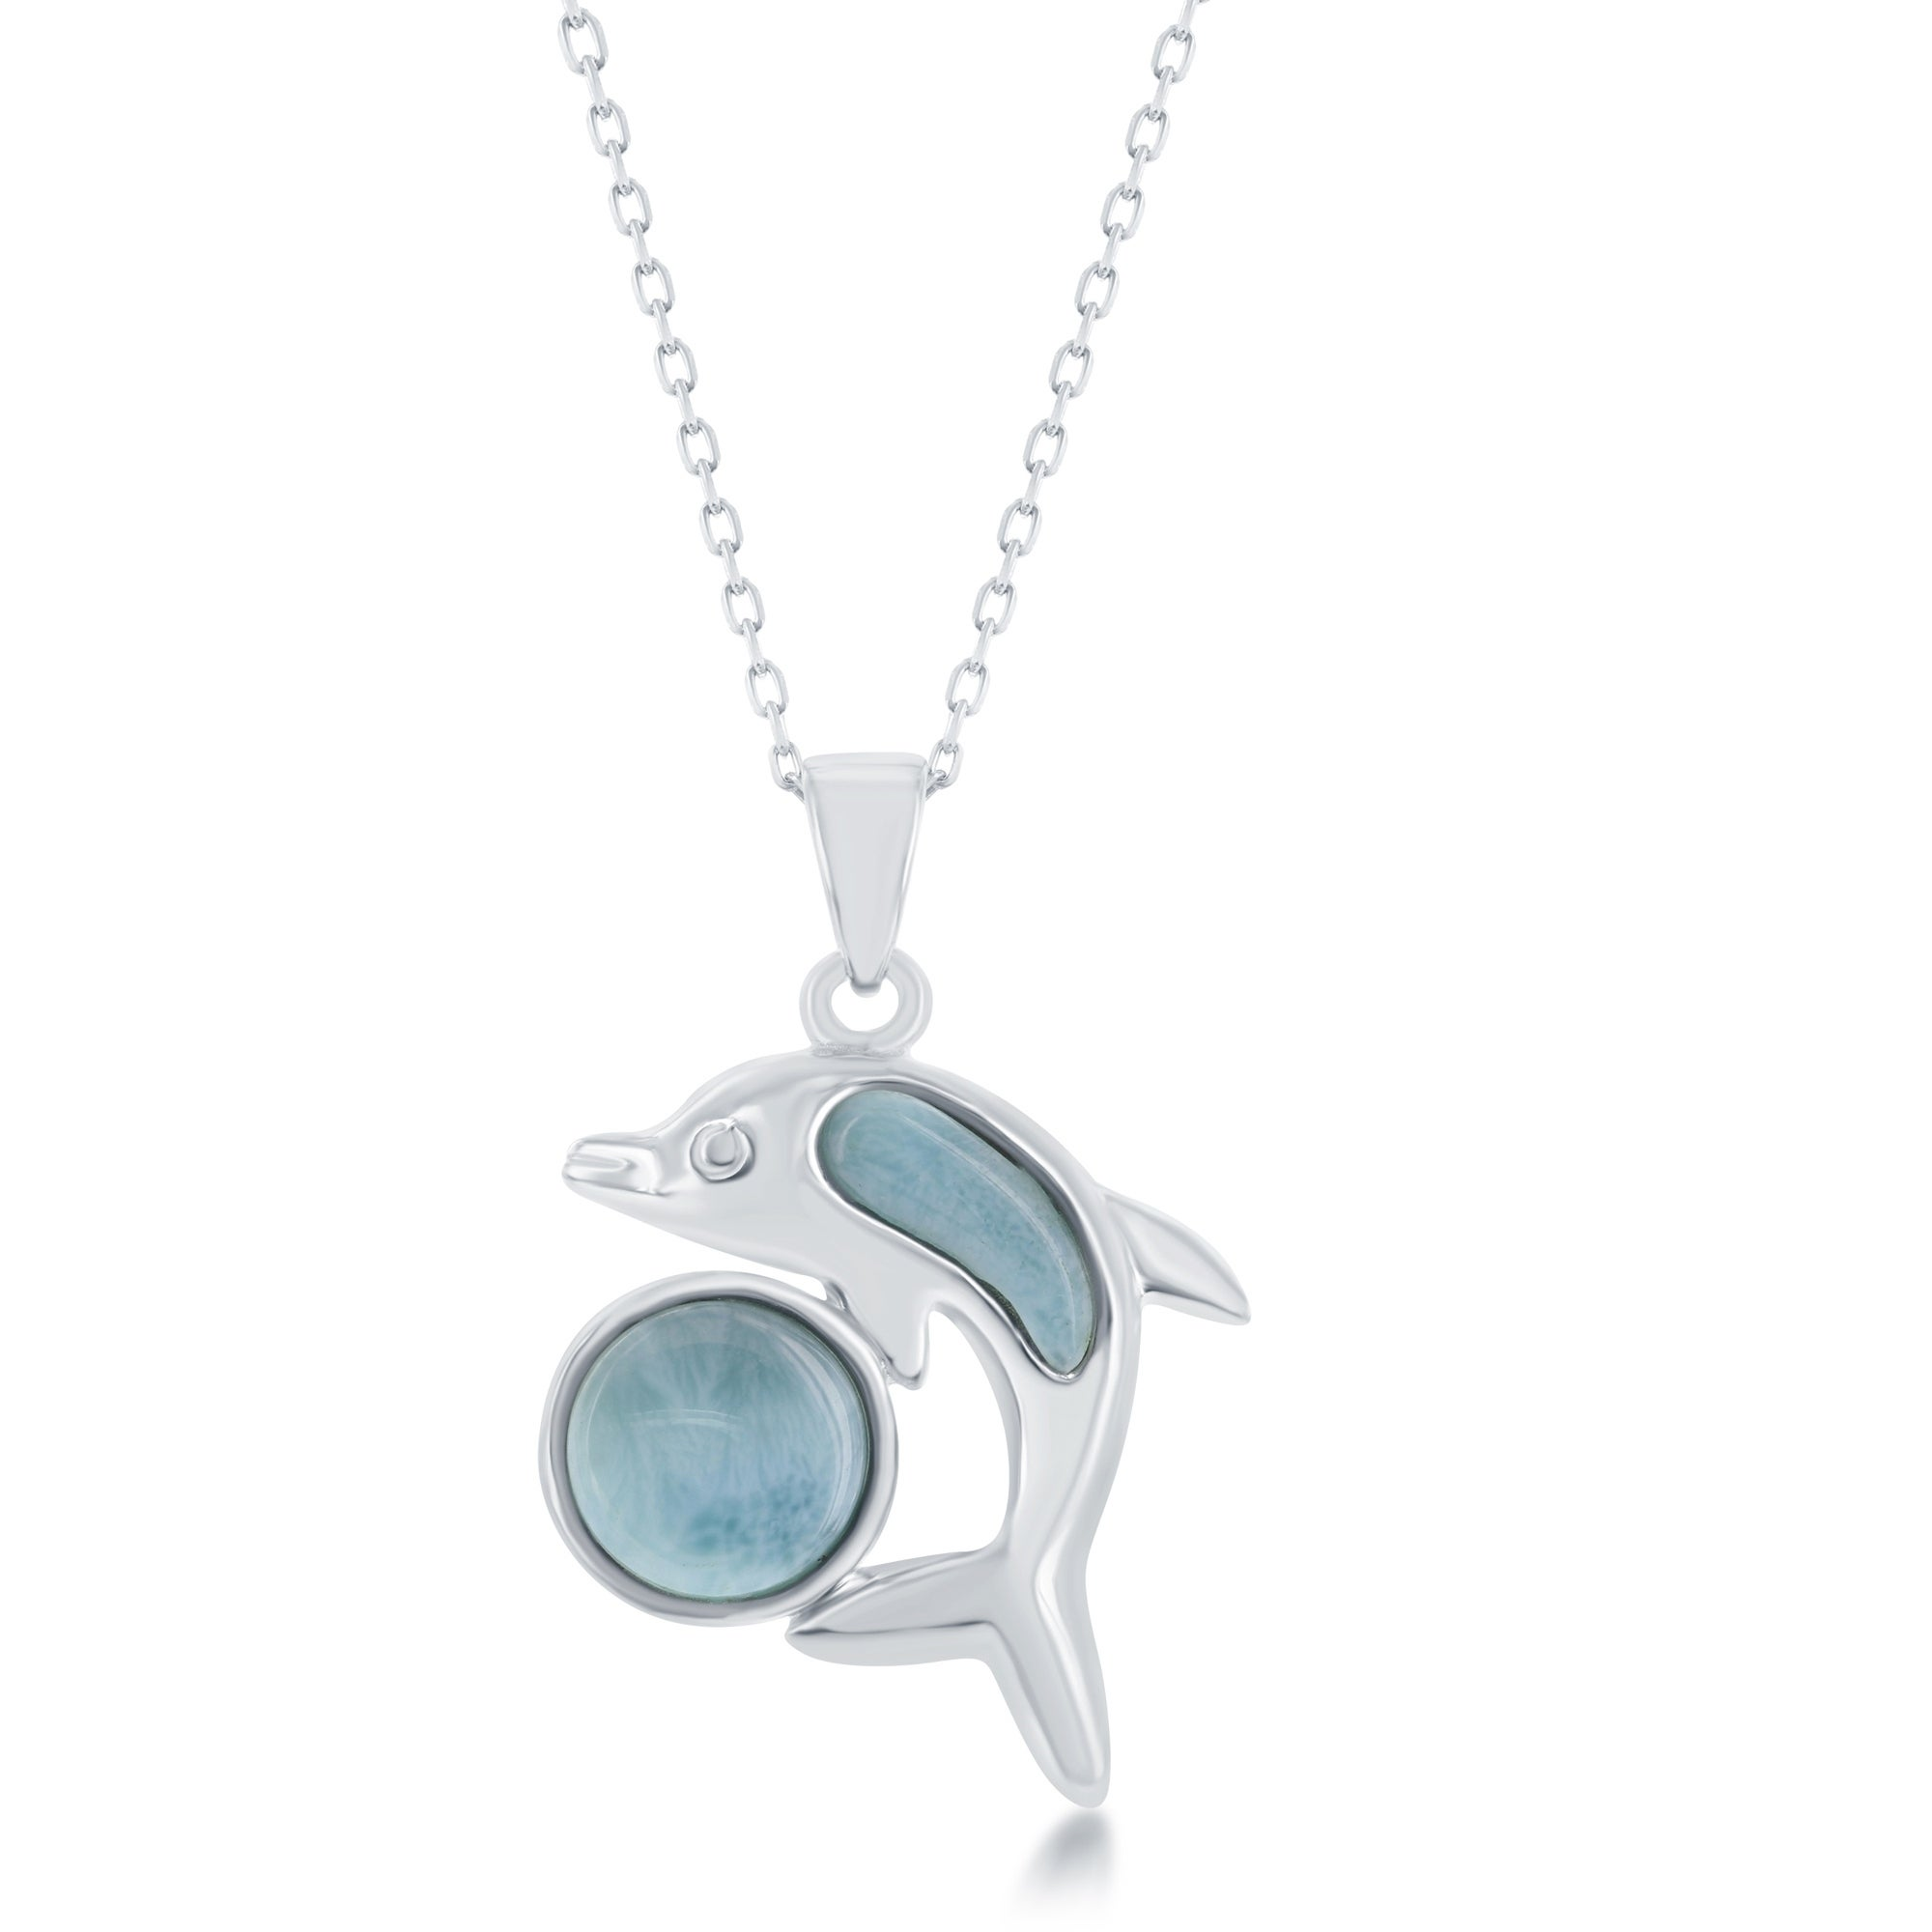 Rocks Rocks Sterling Silver Natural Larimar Pendant with 10mm Round Stone